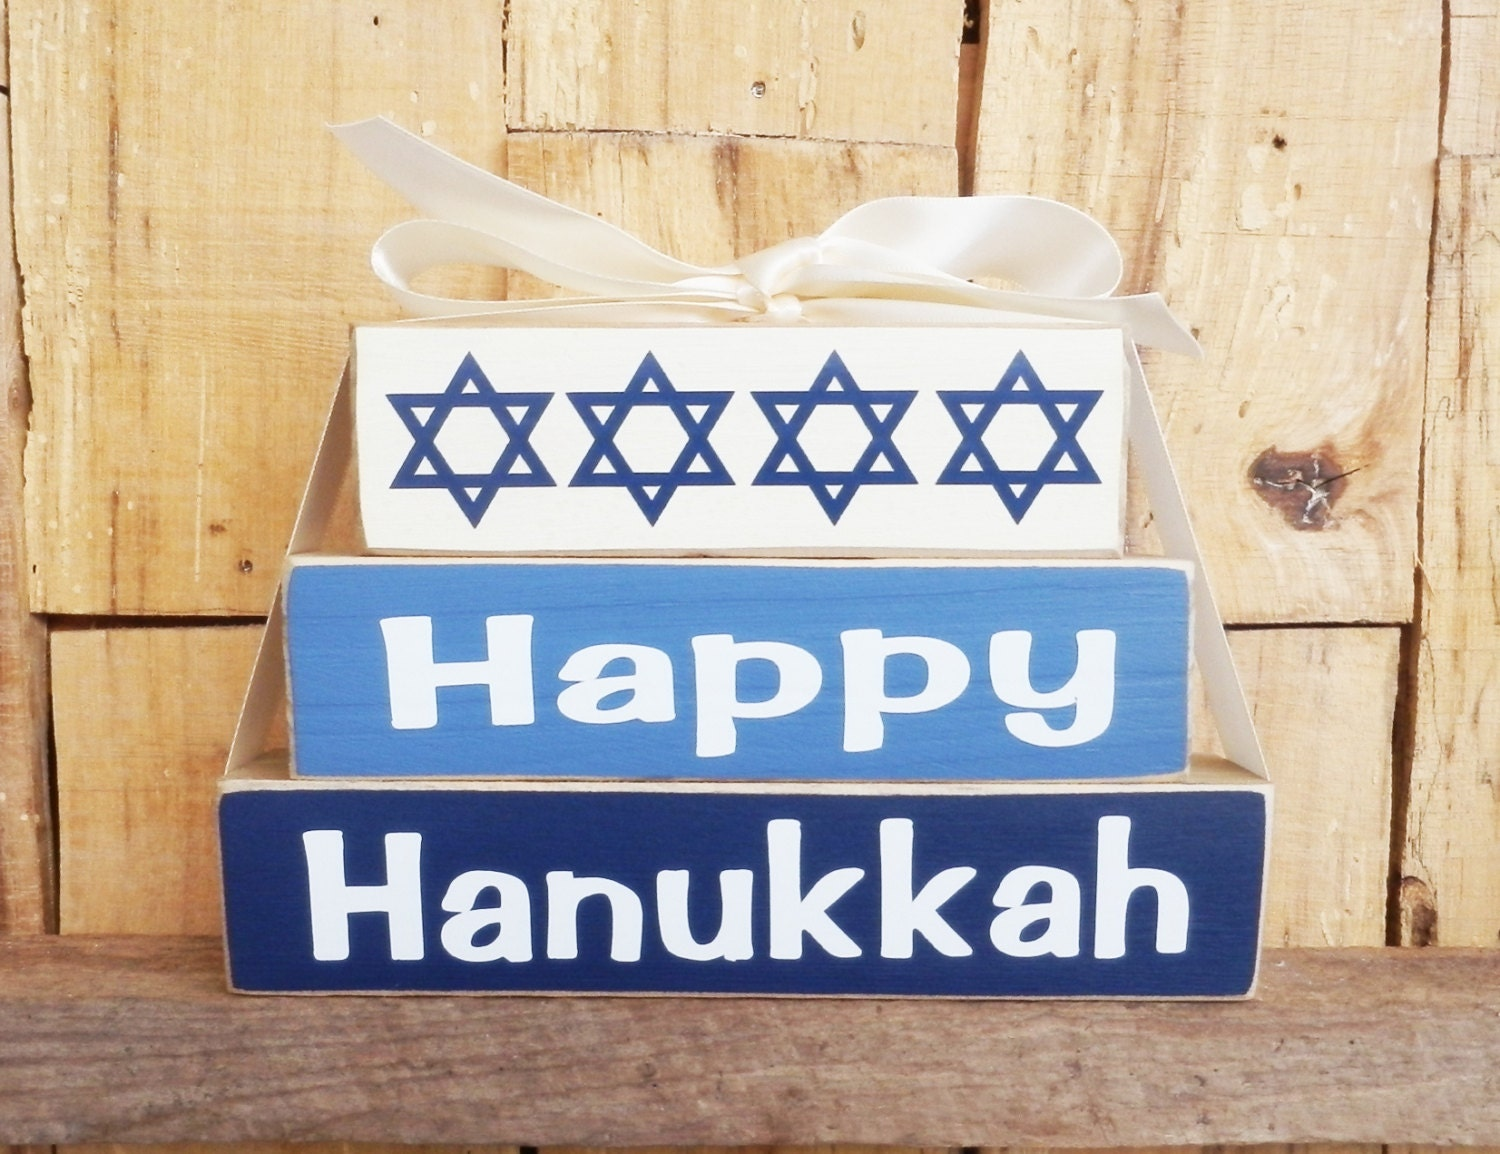 Happy Hanukkah Small Blocks Wood Sign Wood Blocks Holiday